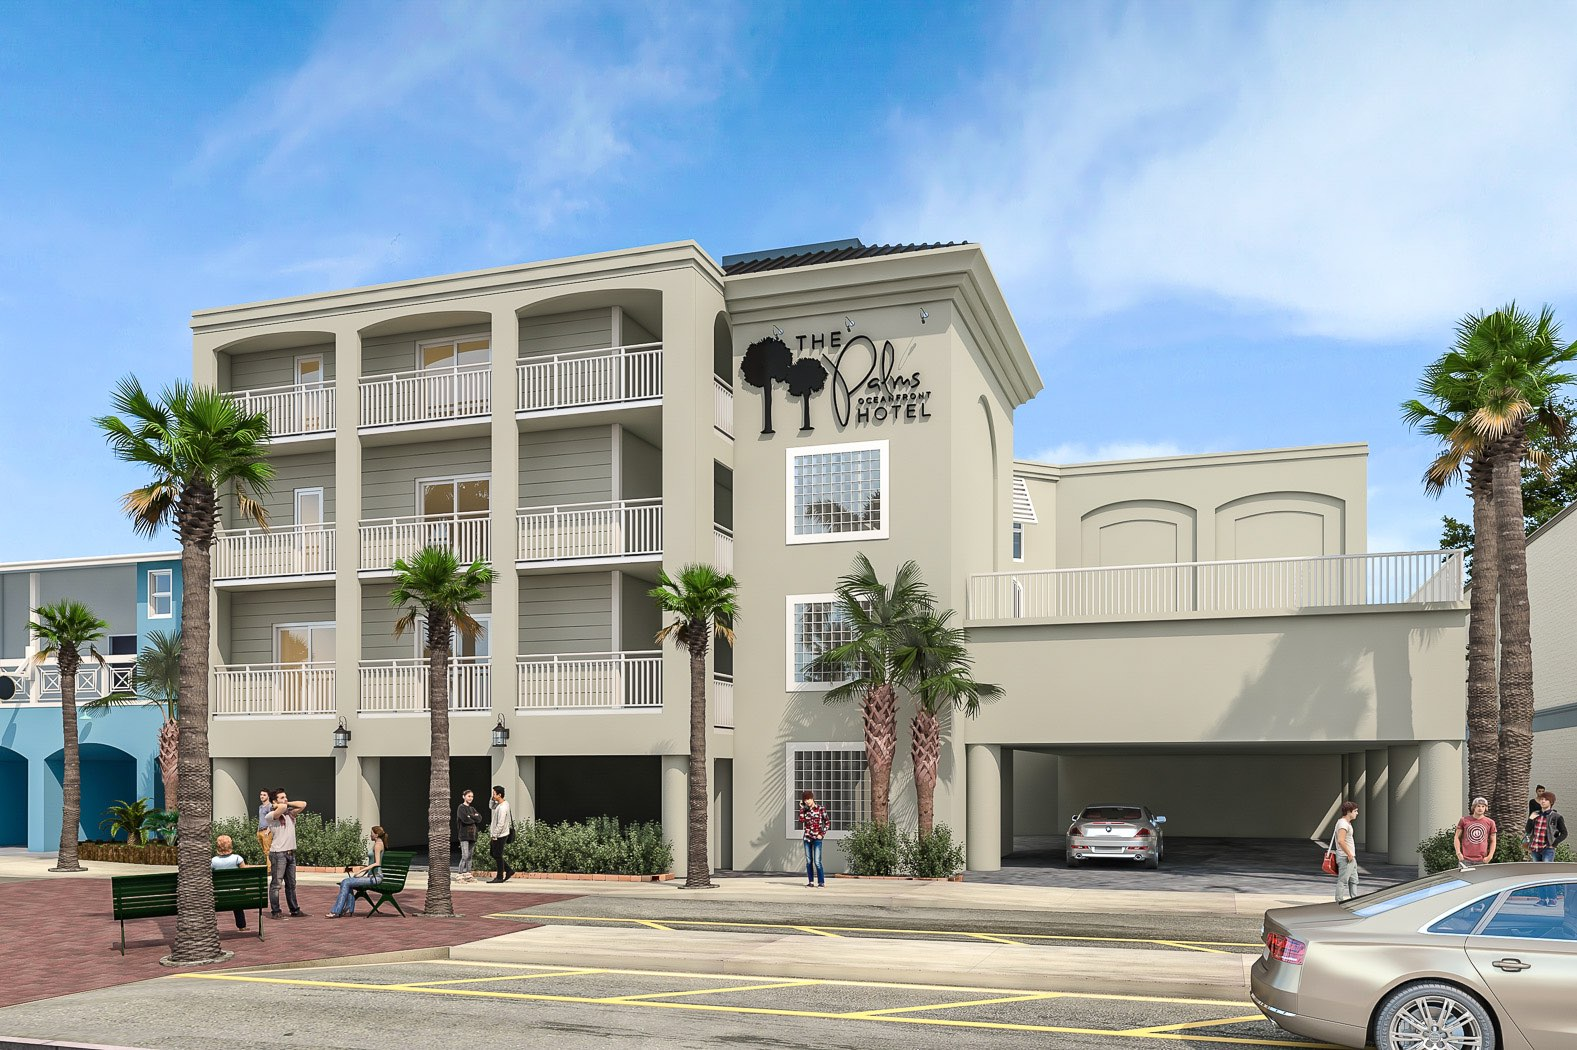 The Palms Oceanfront Hotel - Isle of Palms, SC 29451 - (888)484-9004 | ShowMeLocal.com